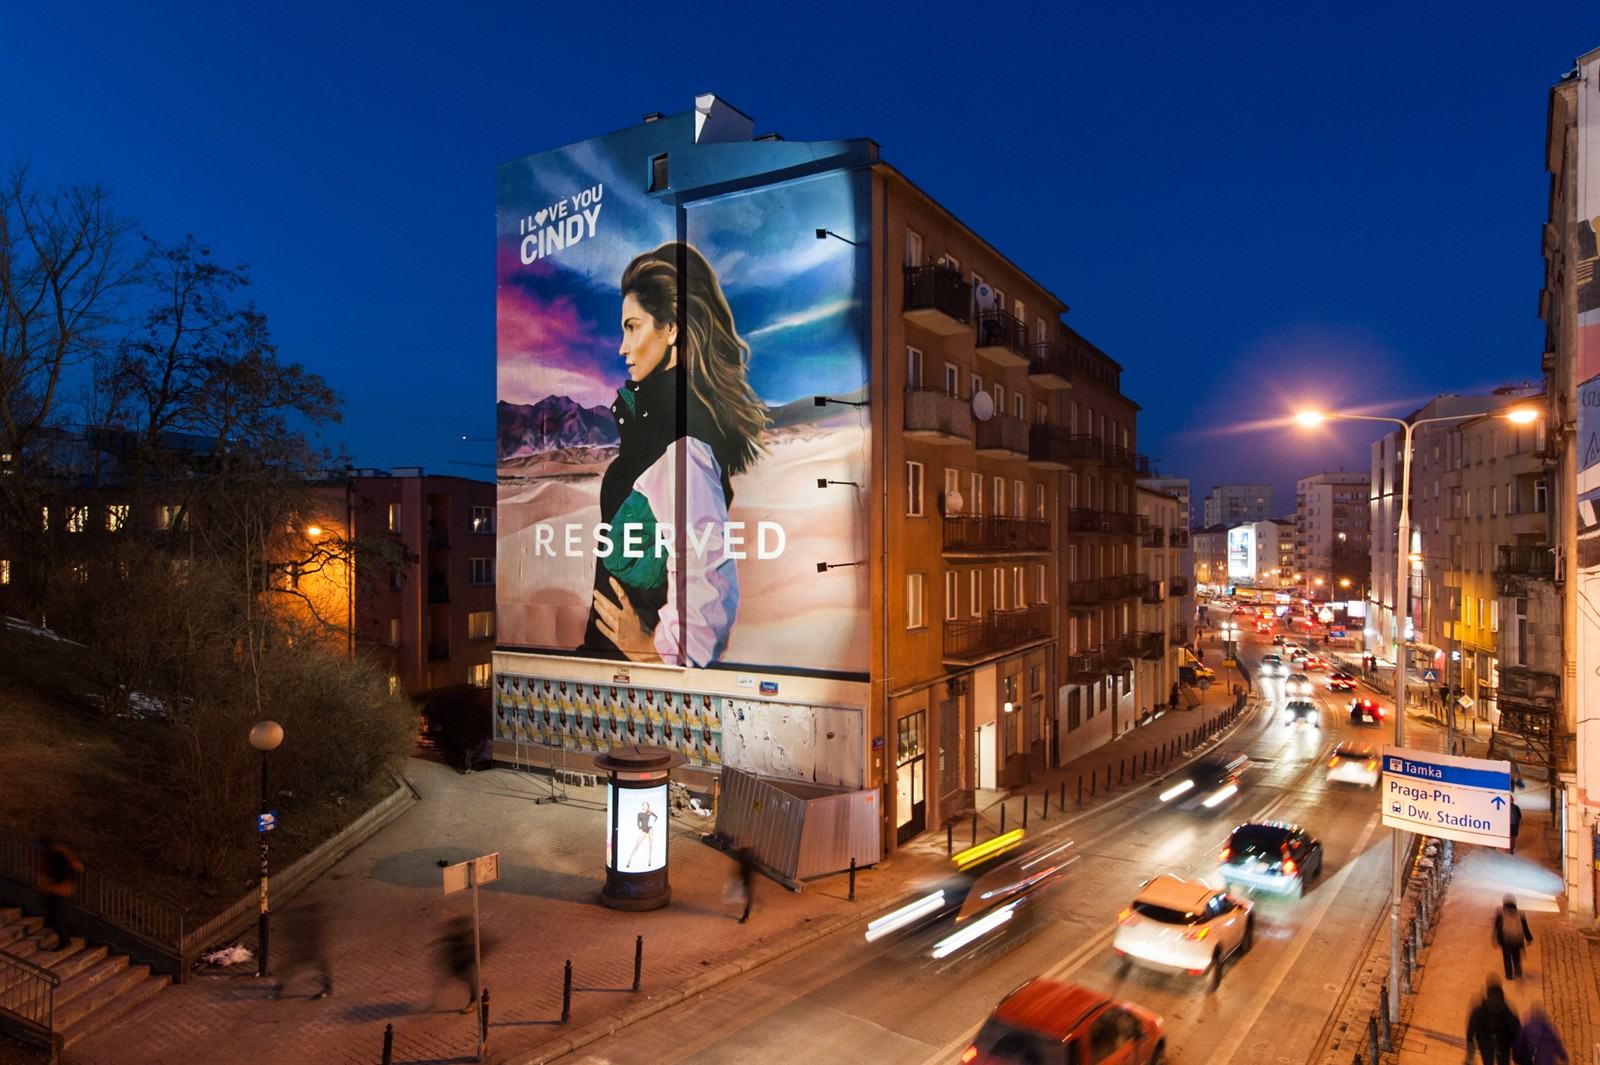 Tamka street on warsaw powisle advertising mural for reserved | I love You Cindy | Portfolio